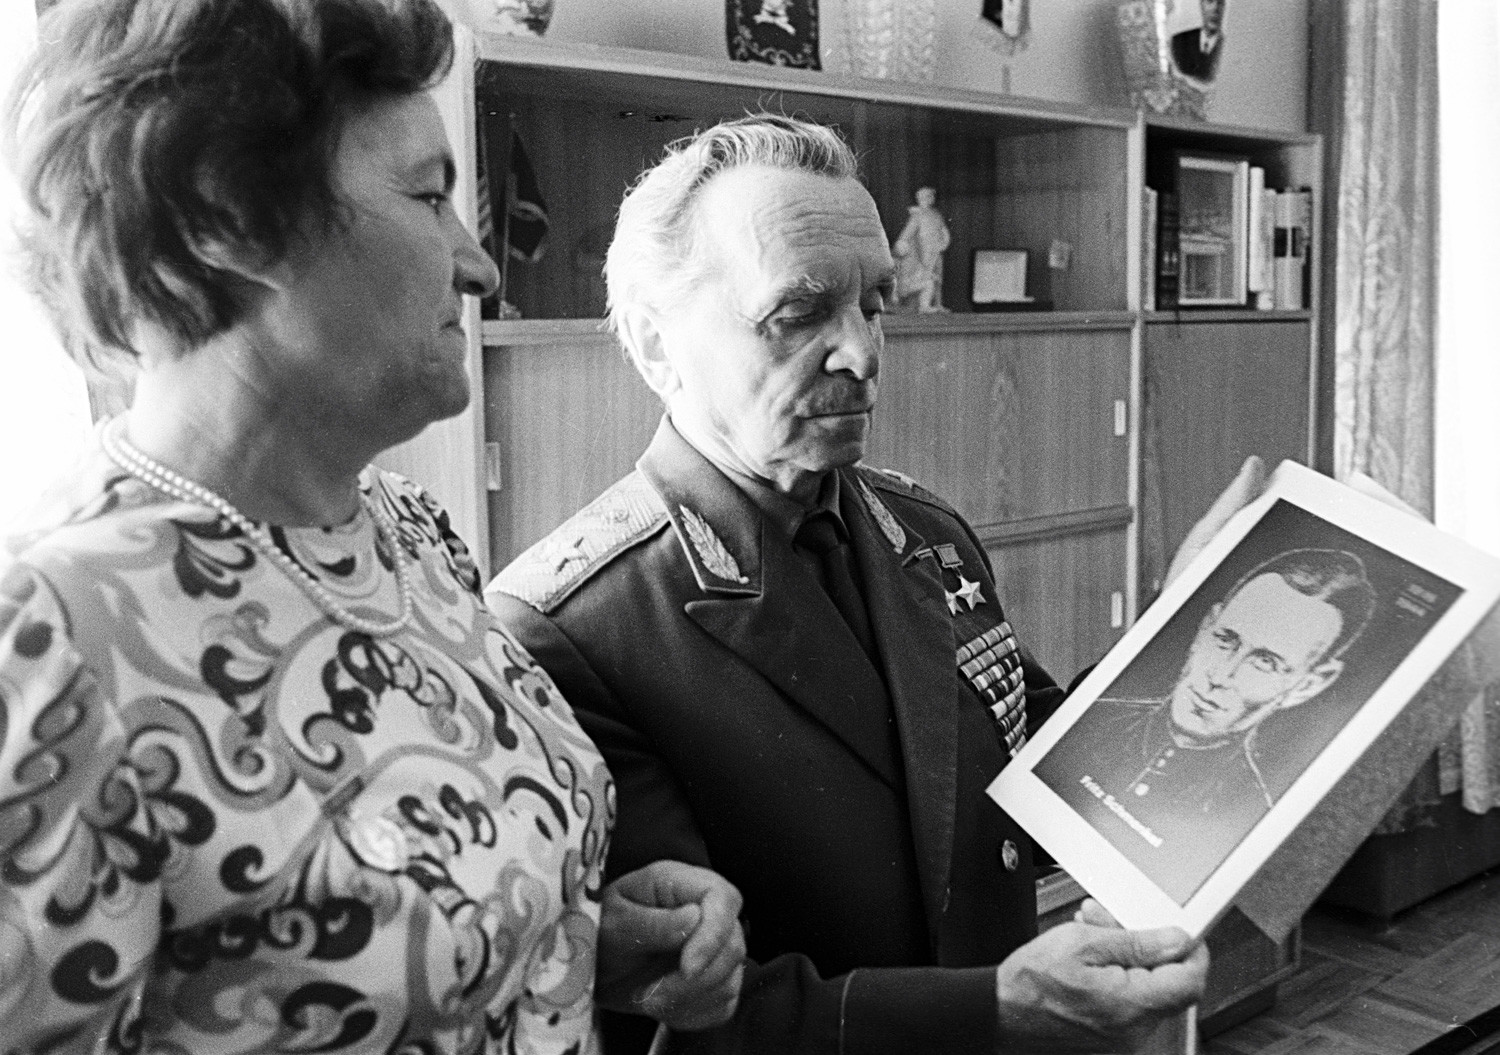 Erna Schmenkel giving General Pyotr Batov an engraving with the image of her husband.